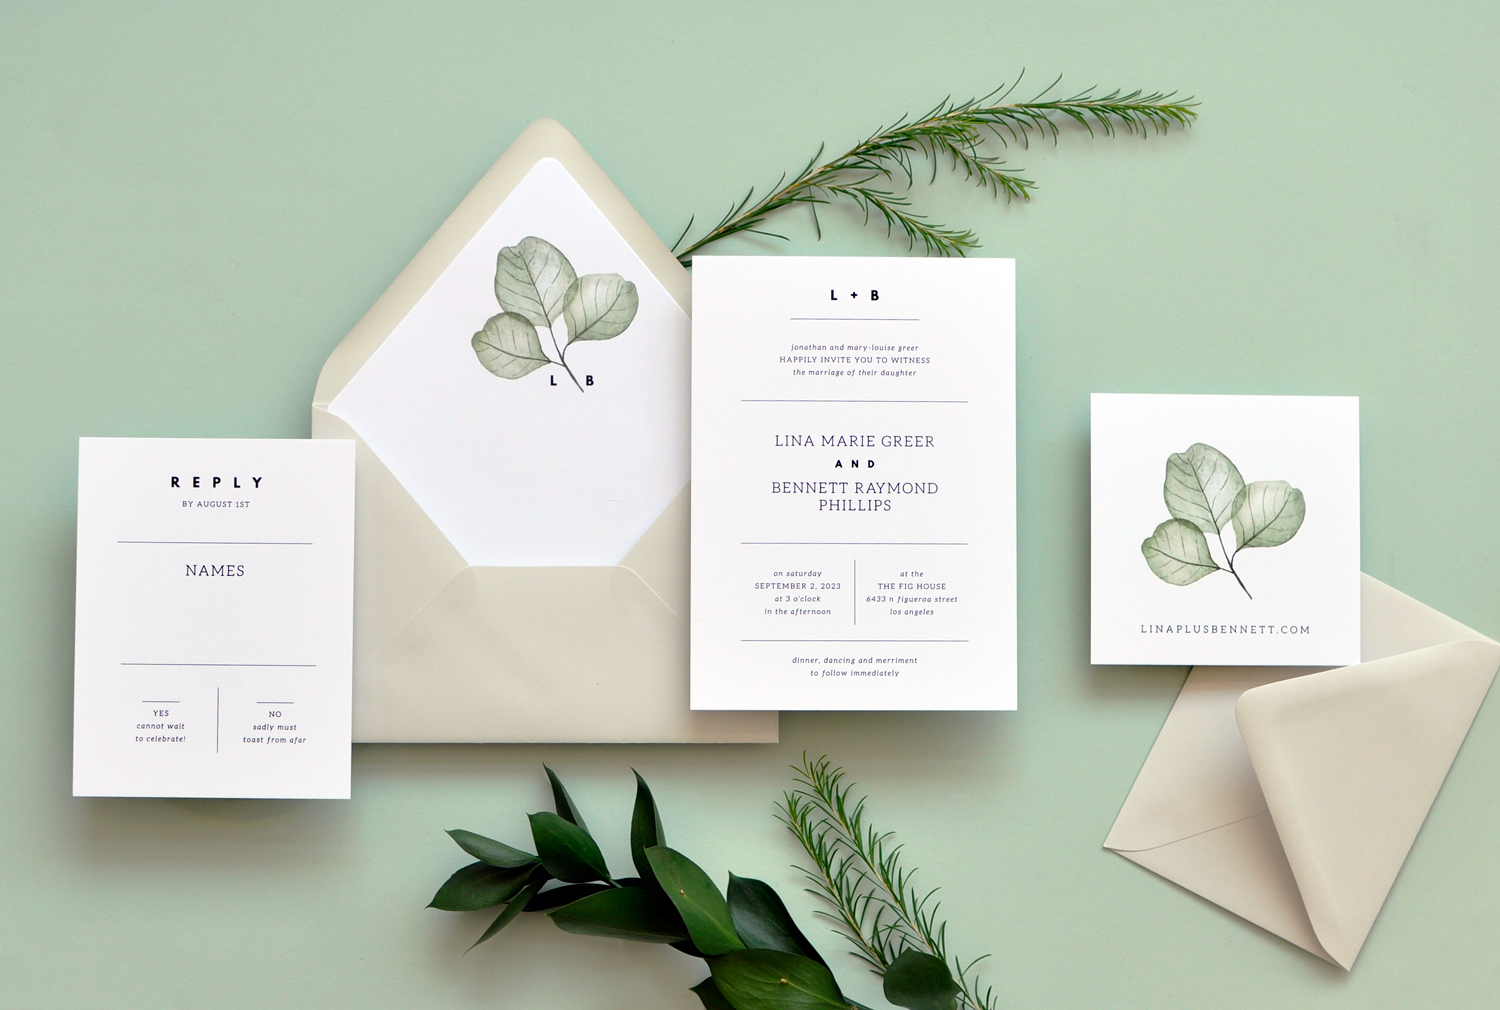 Contemporary text setting with dividing lines and a bold monogram pairs nicely with botanical skeleton leaves in a sage green.